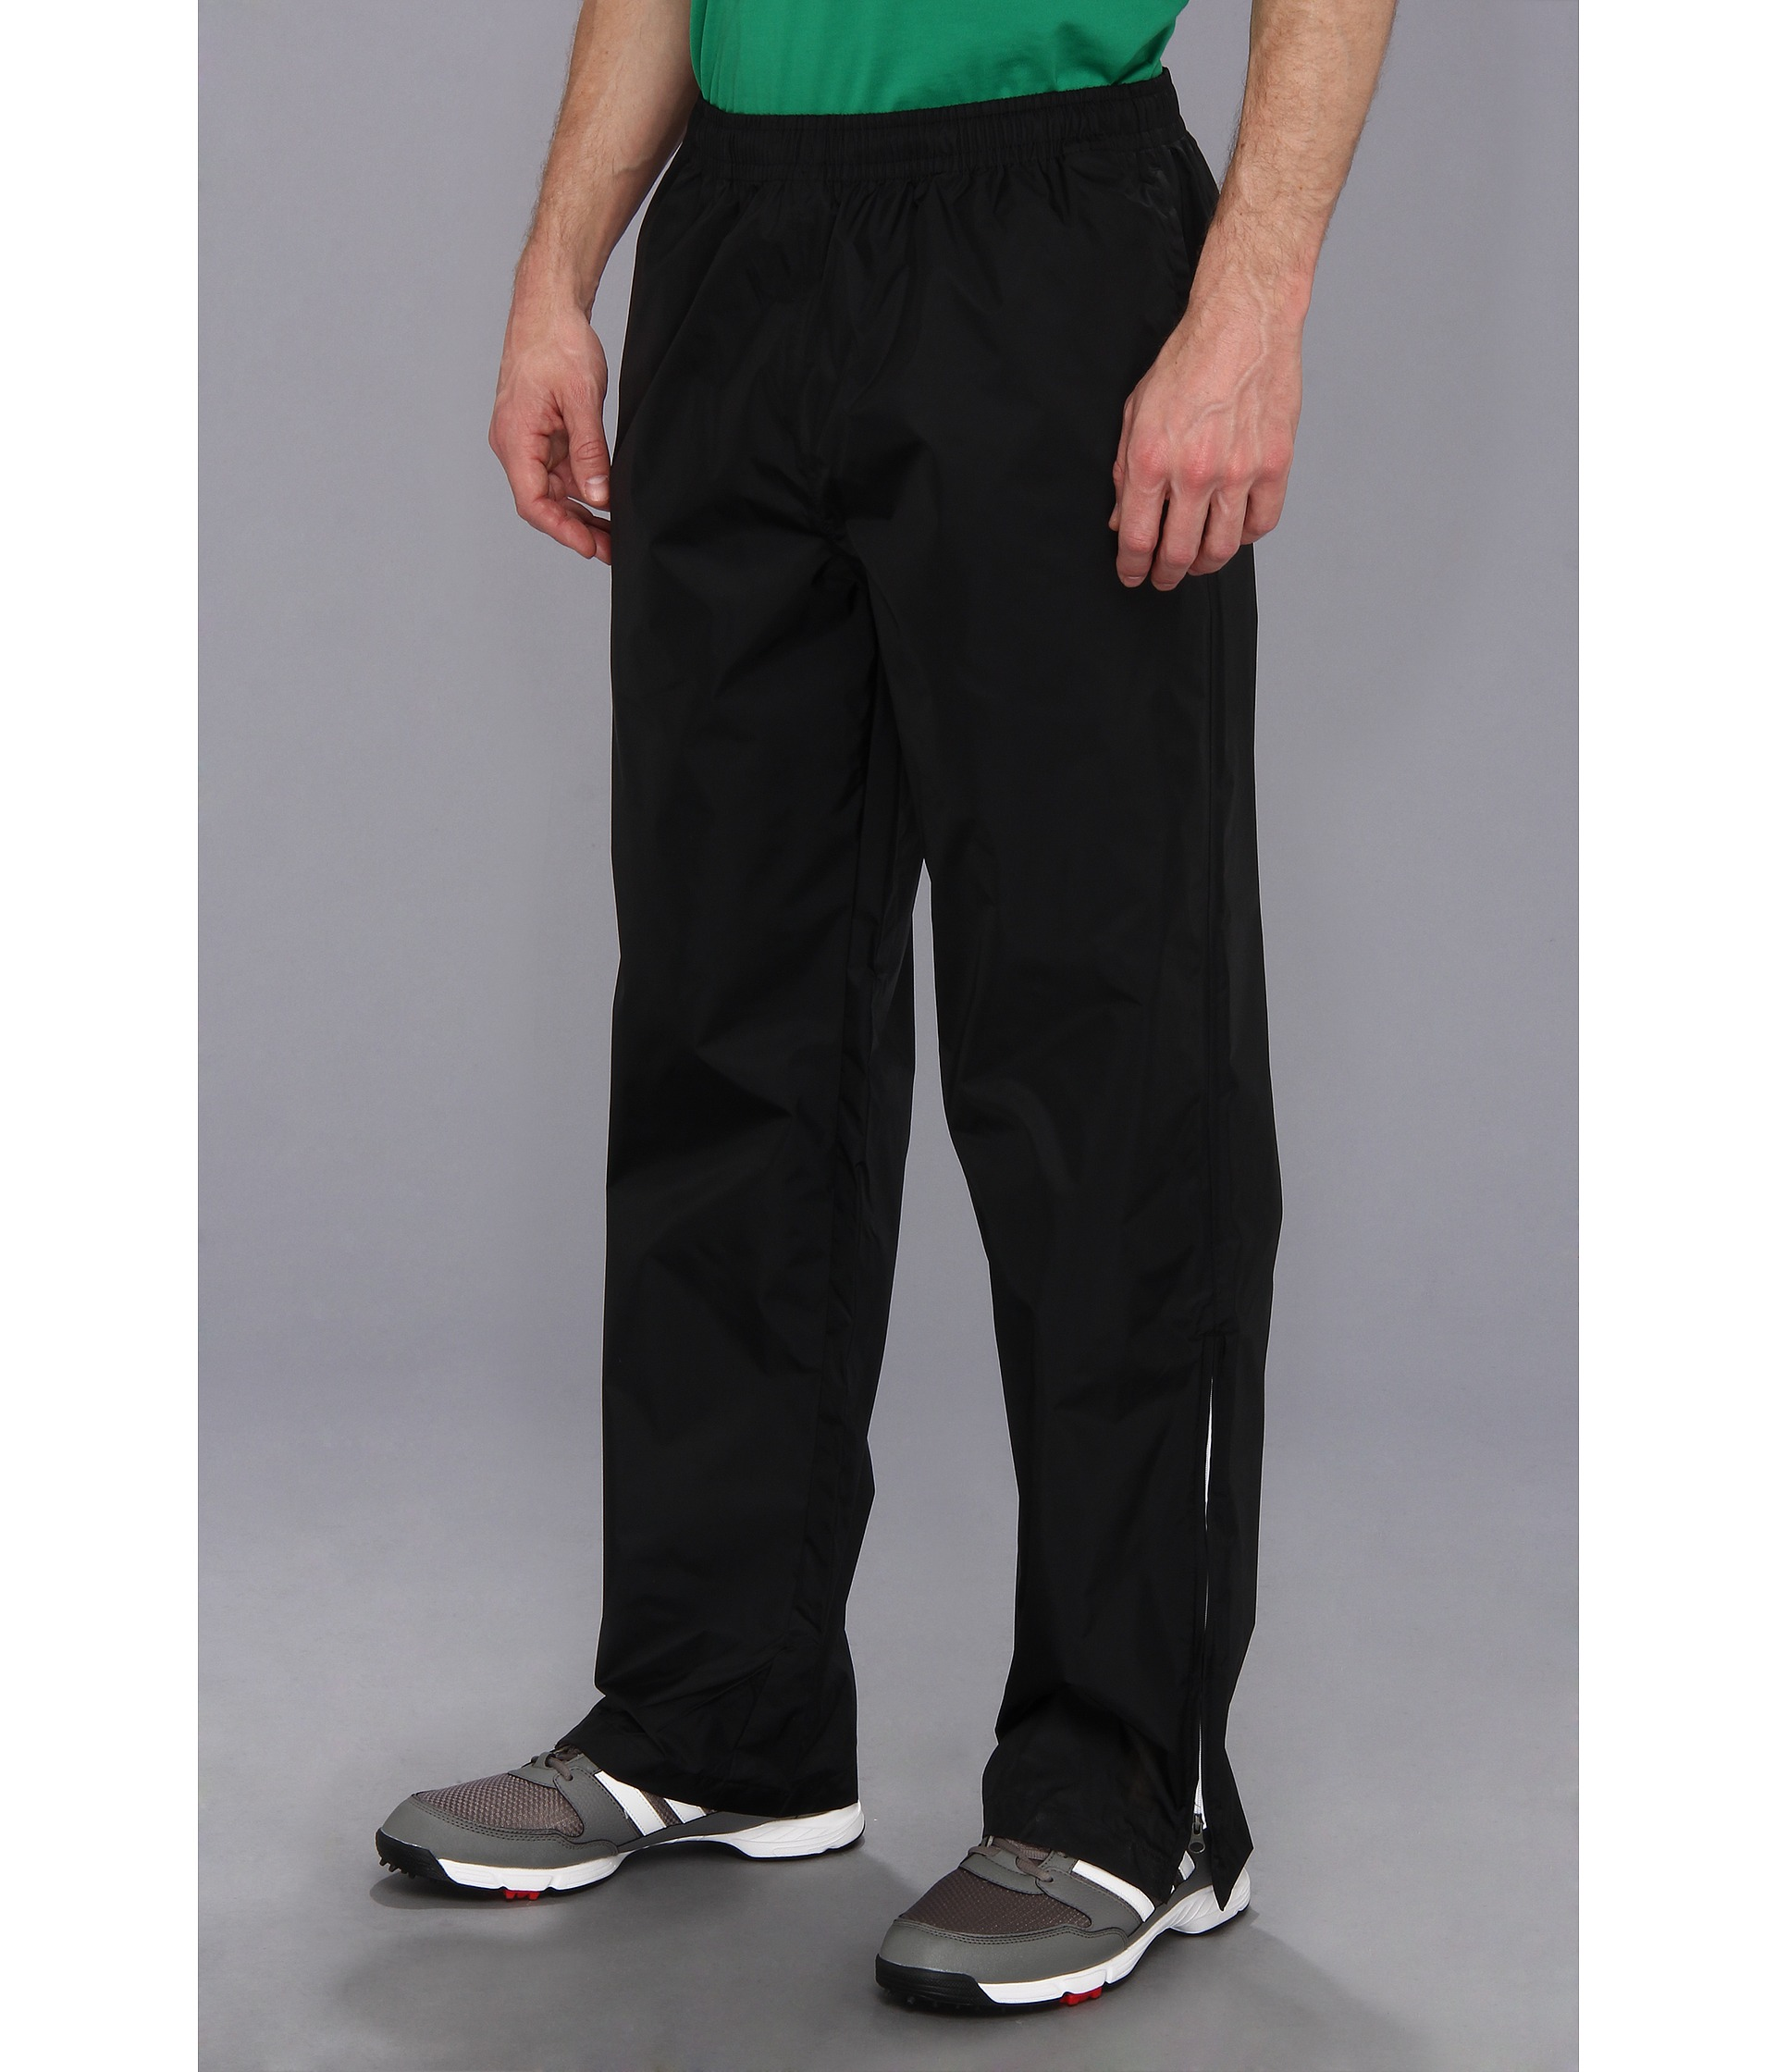 Adidas golf provisional rain pant clothing shipped free for Adidas golf rain shirt